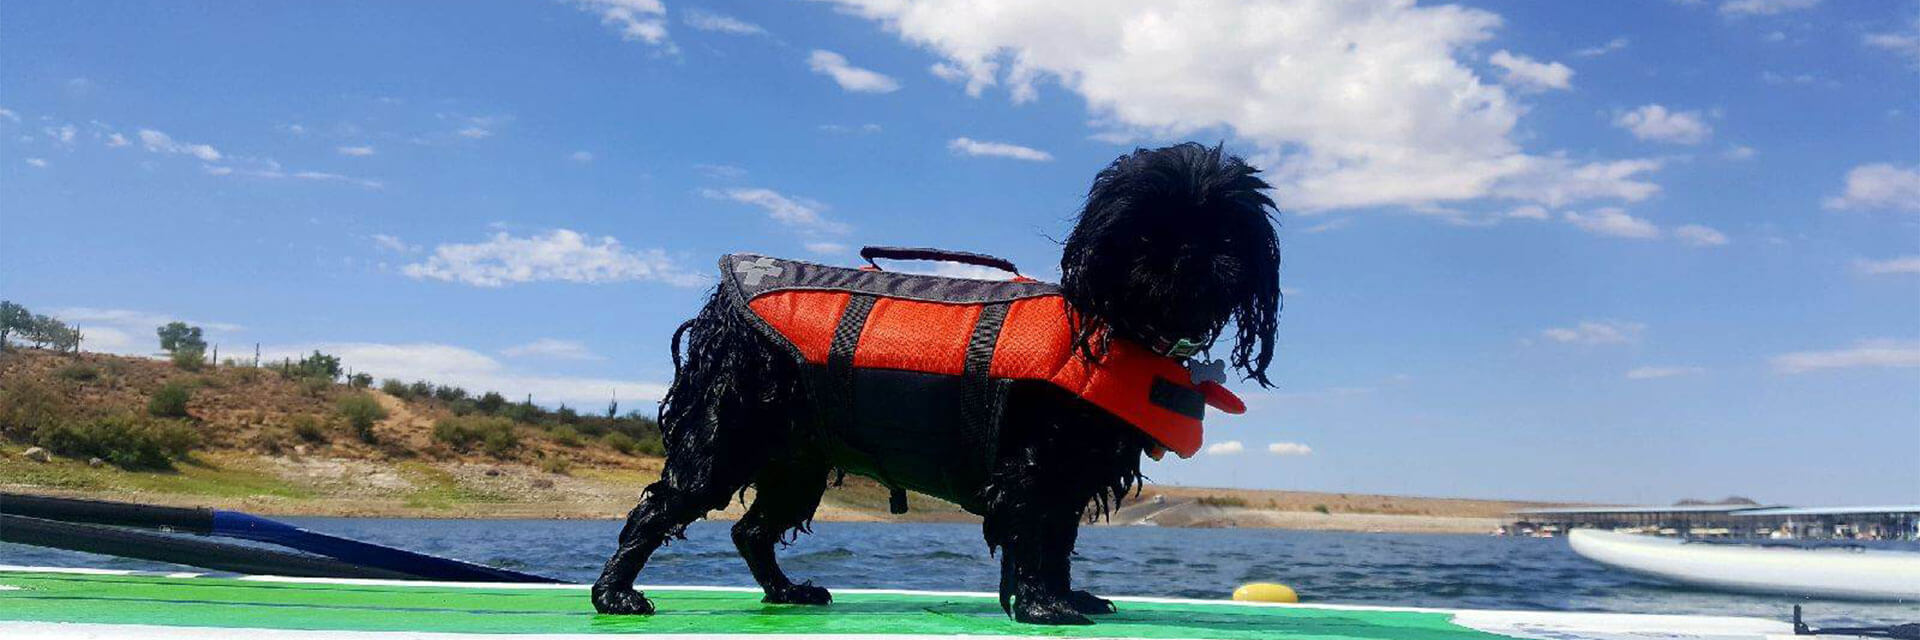 A yappy little dog with a life jacket on standing on a stand up paddleboard